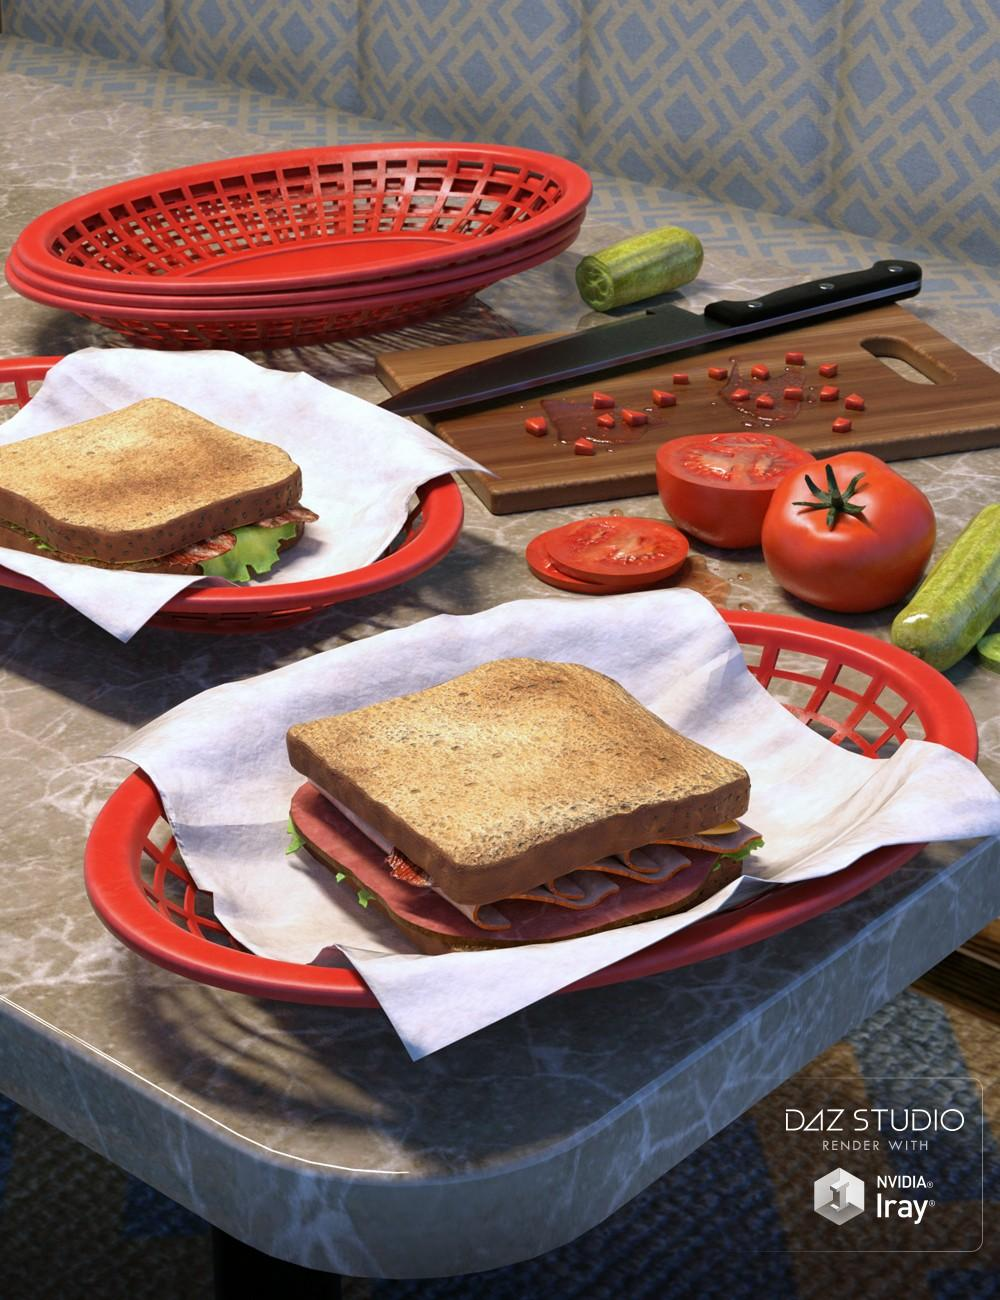 ARK Modern Food Pack I - Sandwiches